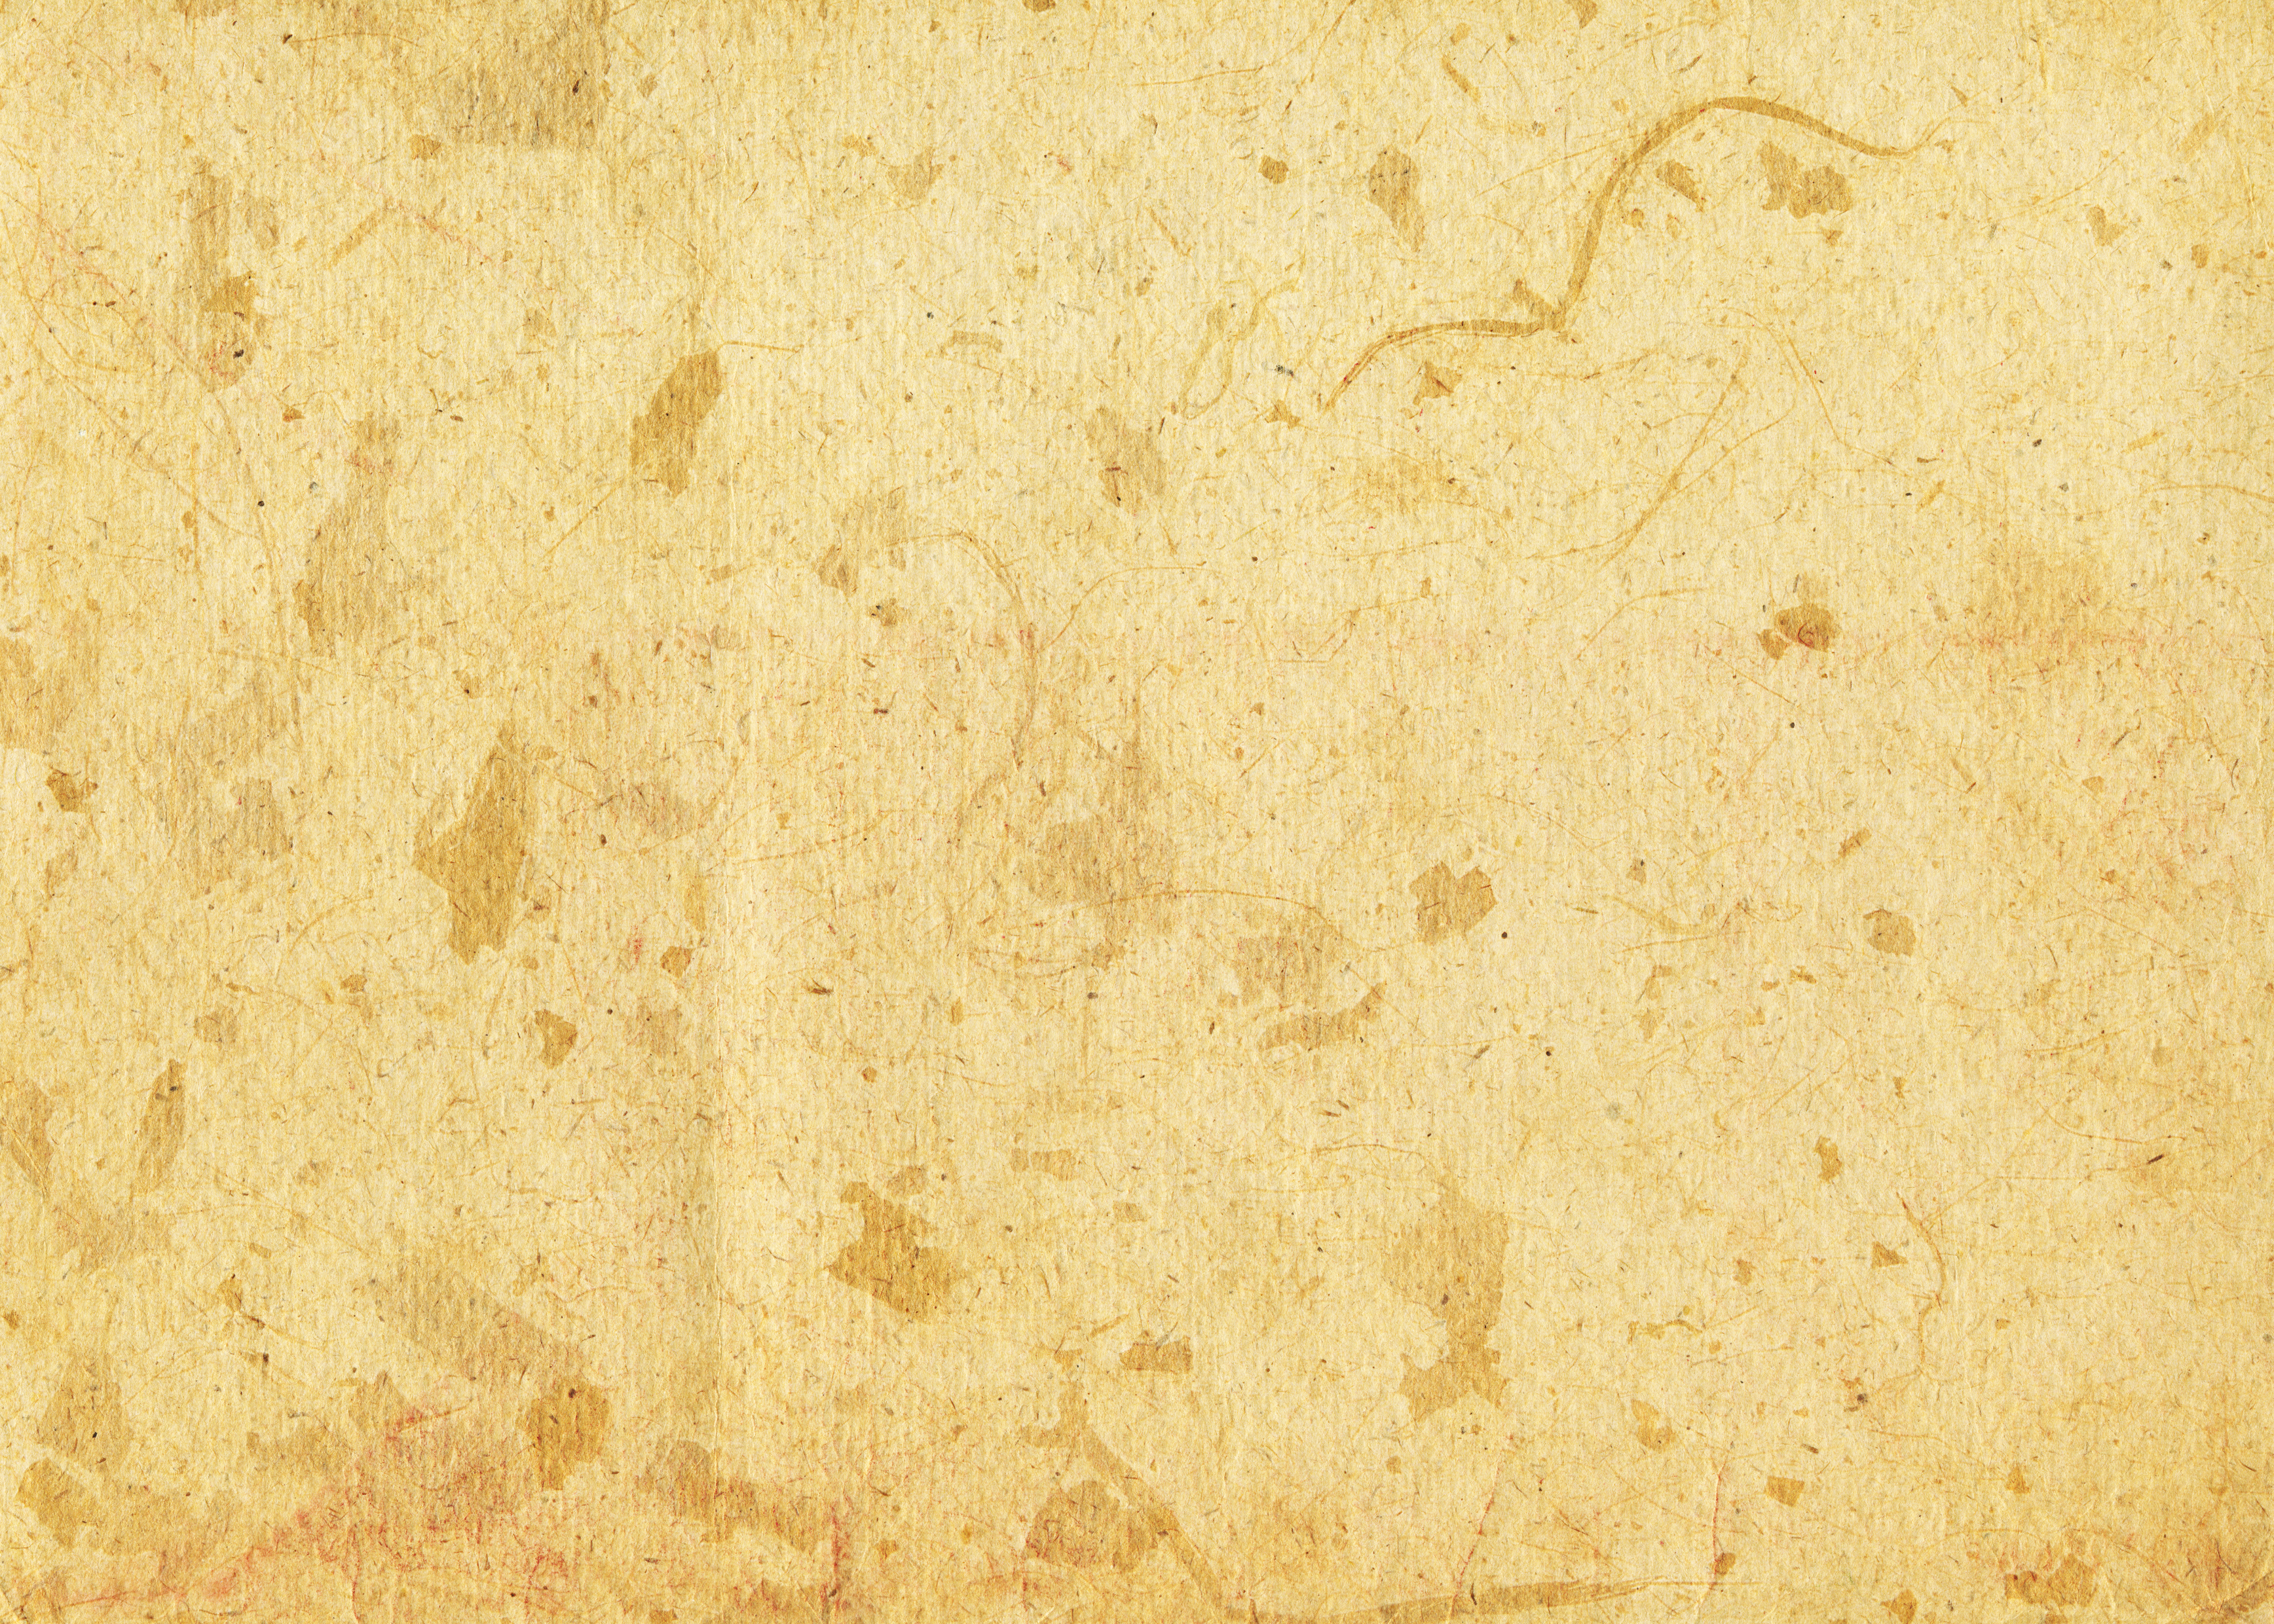 Old Grunge Vintage Paper Texture, Aged, Smudged, Photo, Photography, HQ Photo